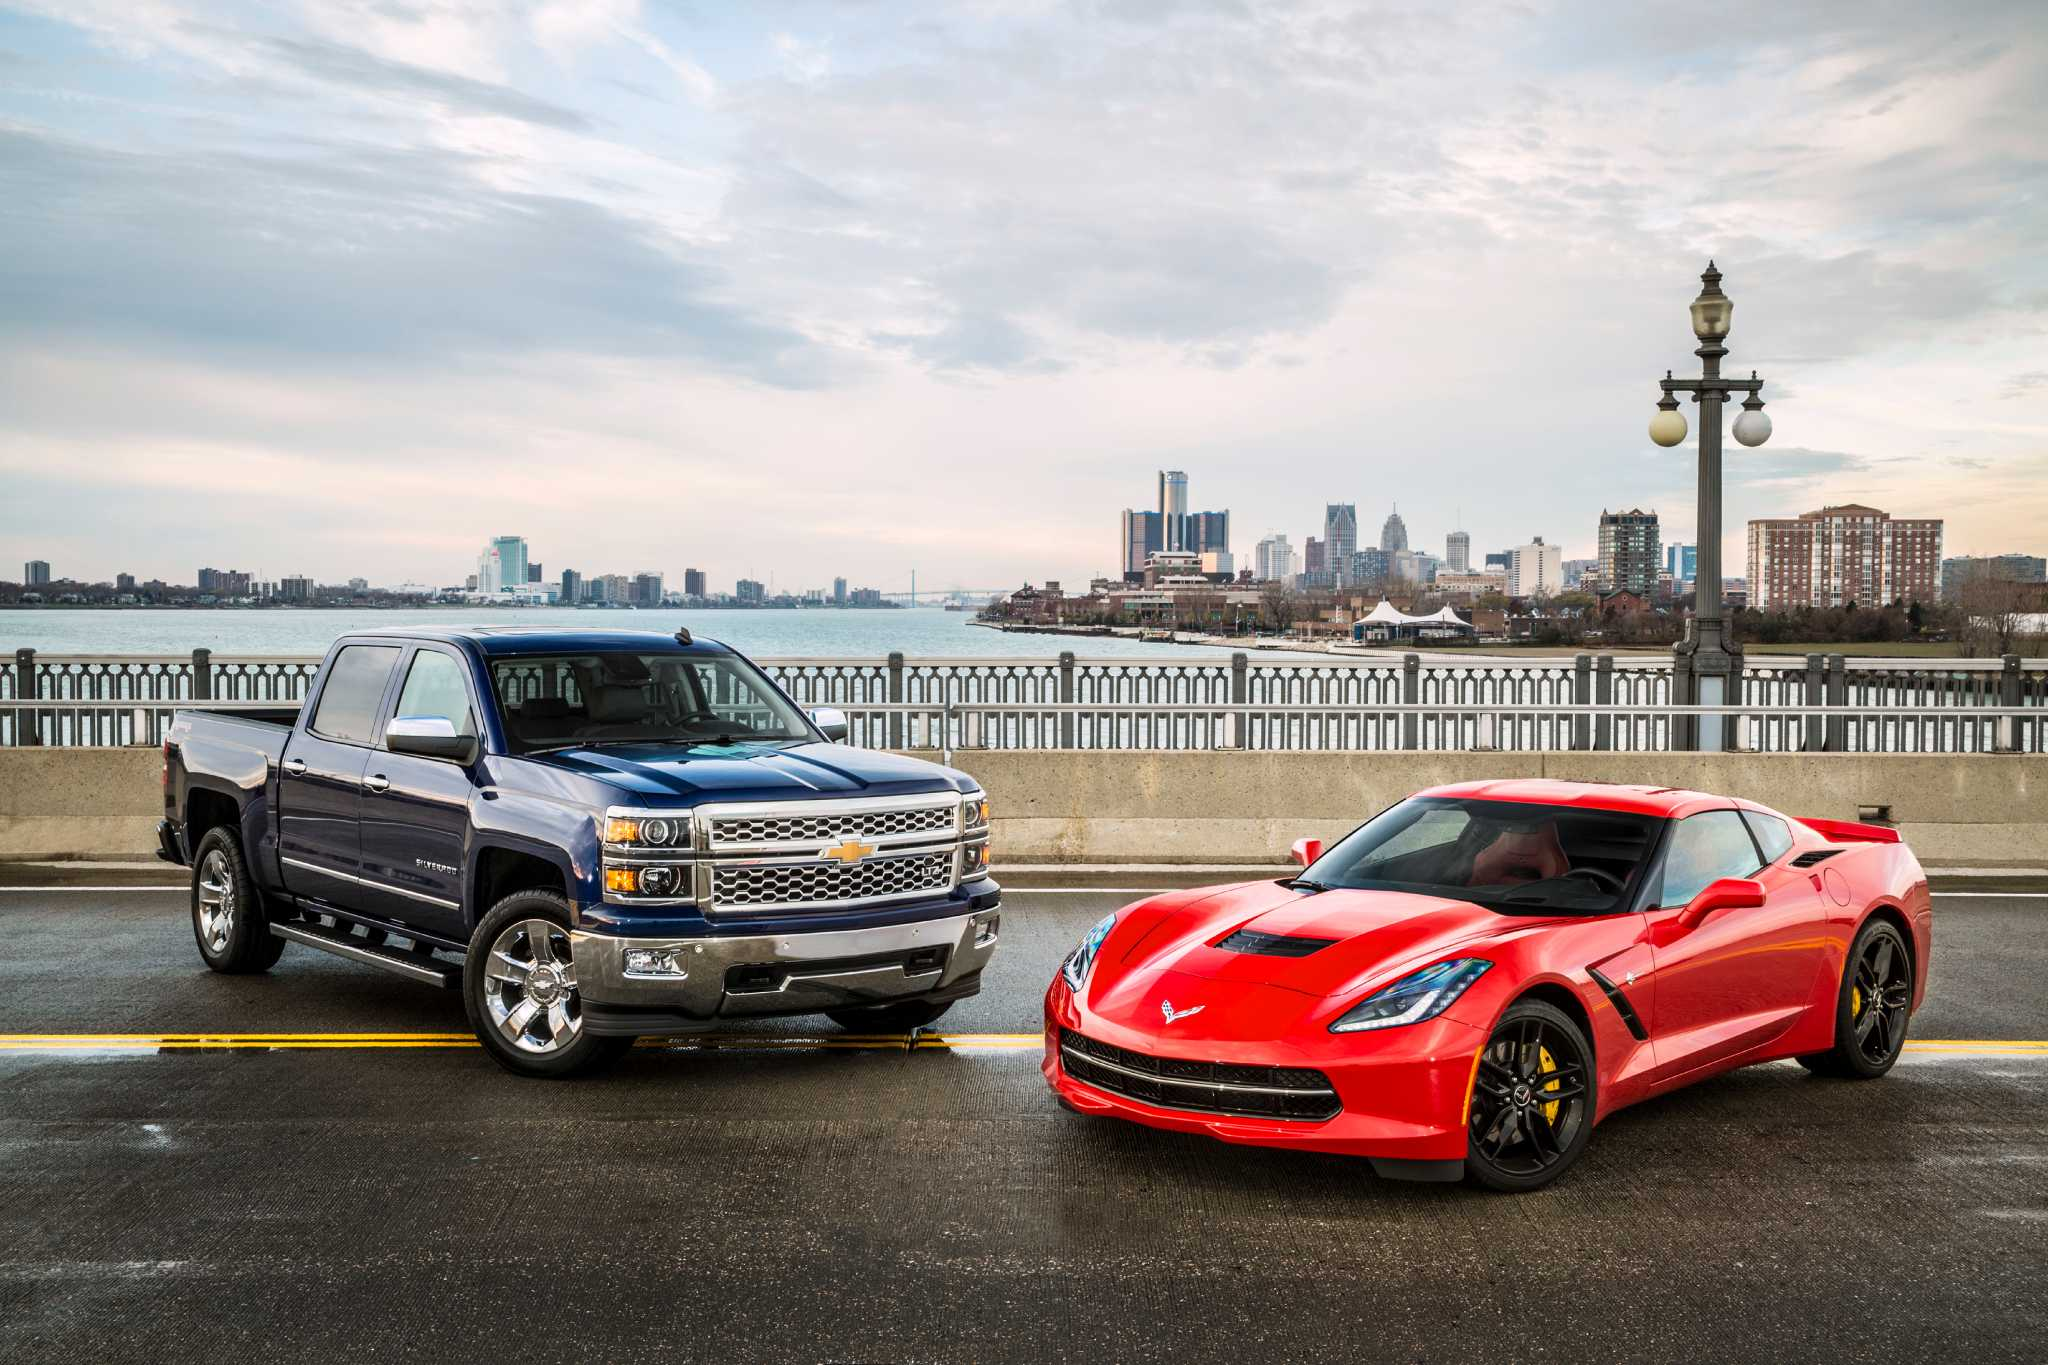 Houston Auto Show shines with star studded lineup Houston Chronicle